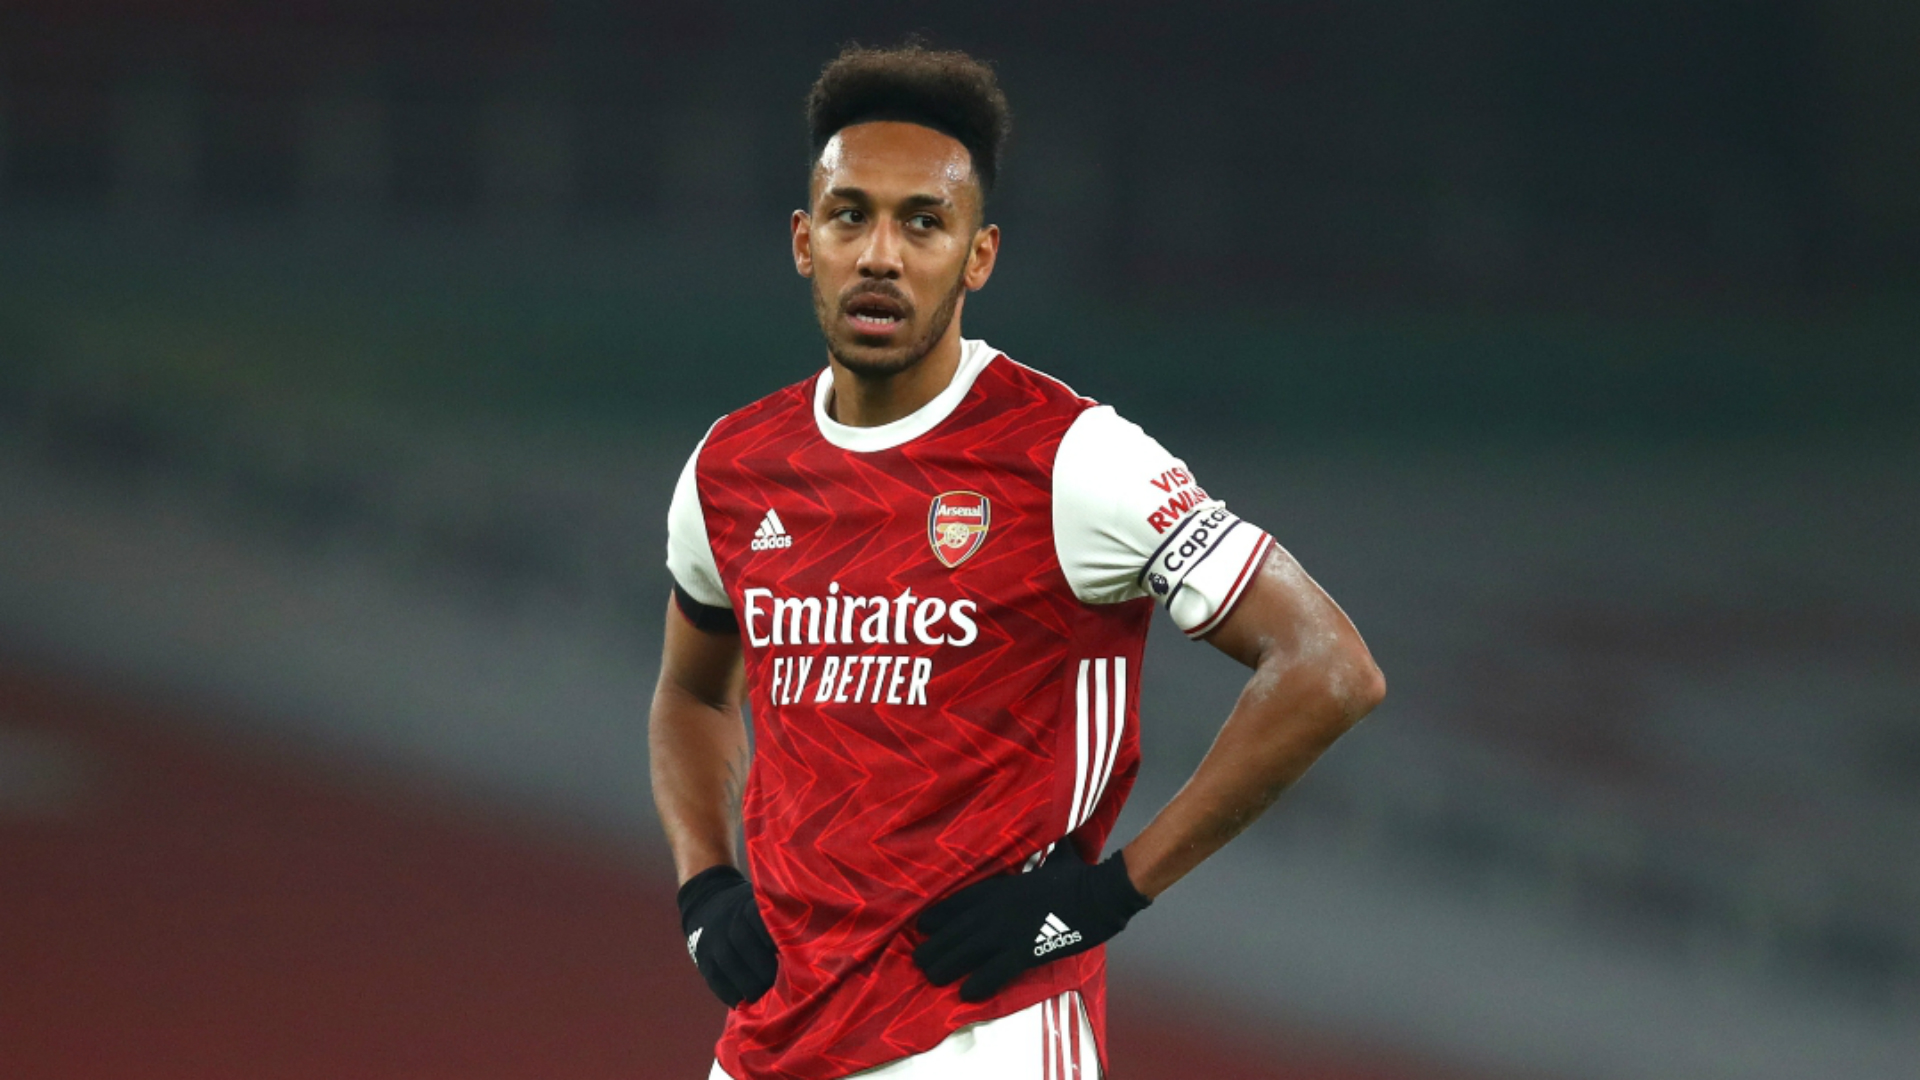 Arsenal boss Arteta urges slumping Aubameyang not to overthink things